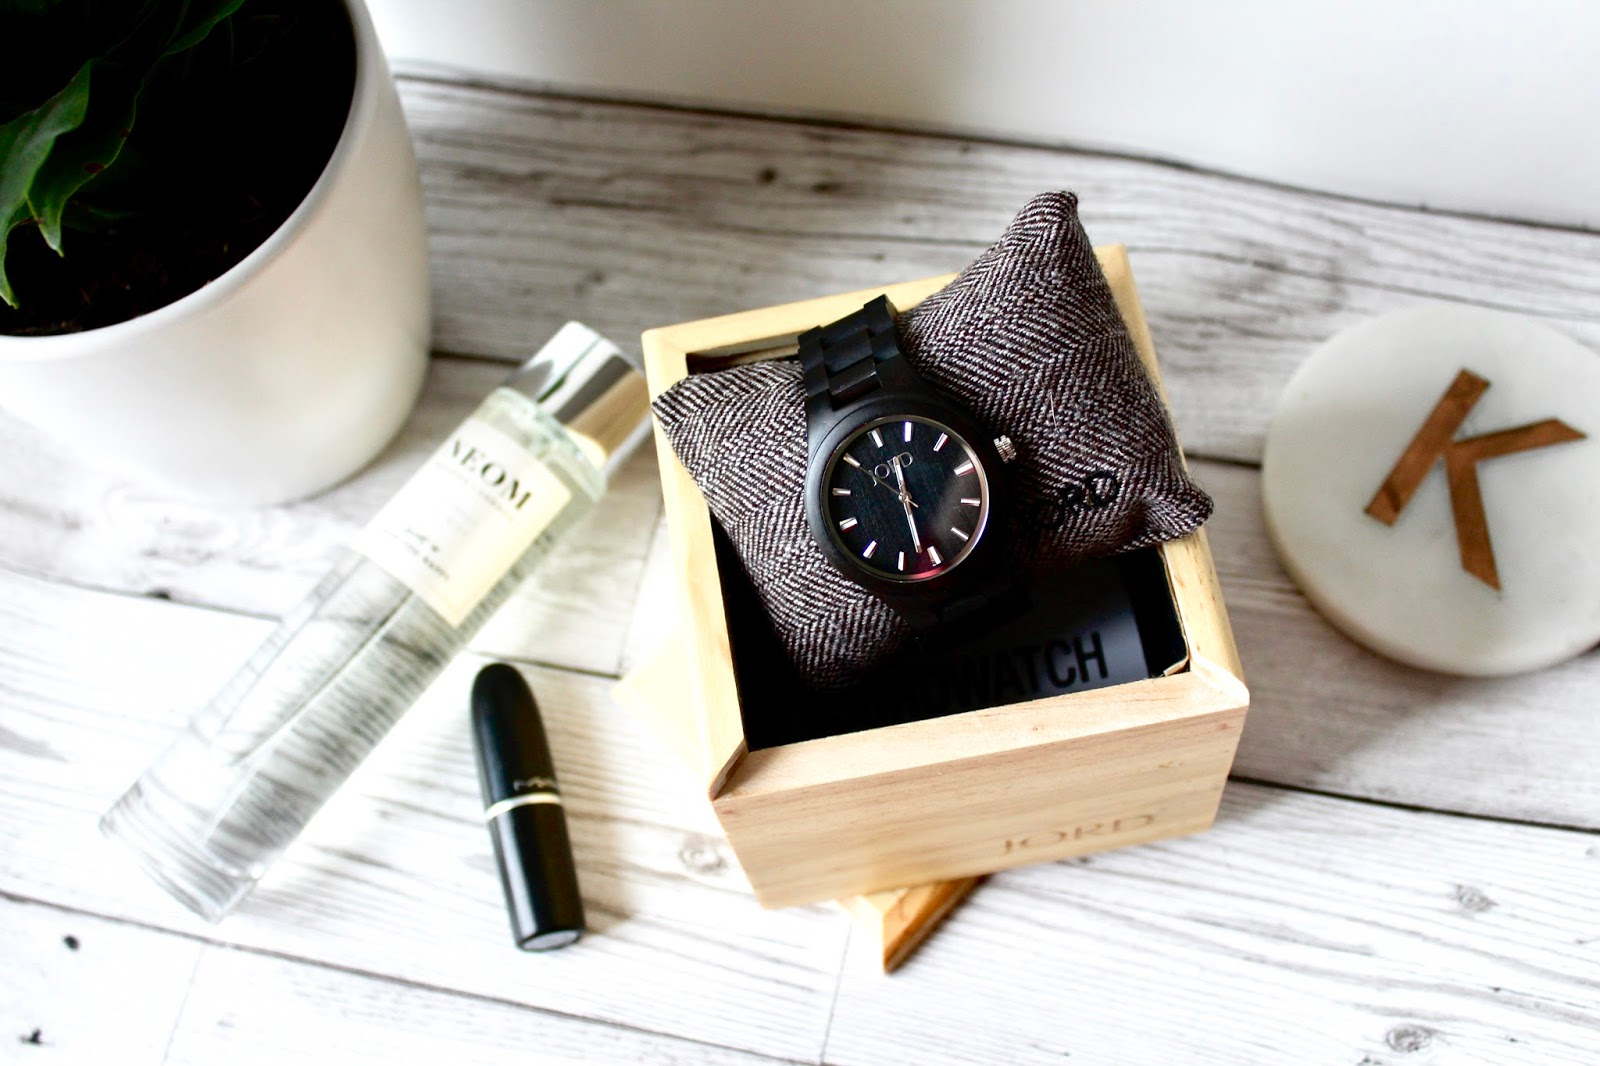 Jord: Wooden Watches I've Totally Fallen For